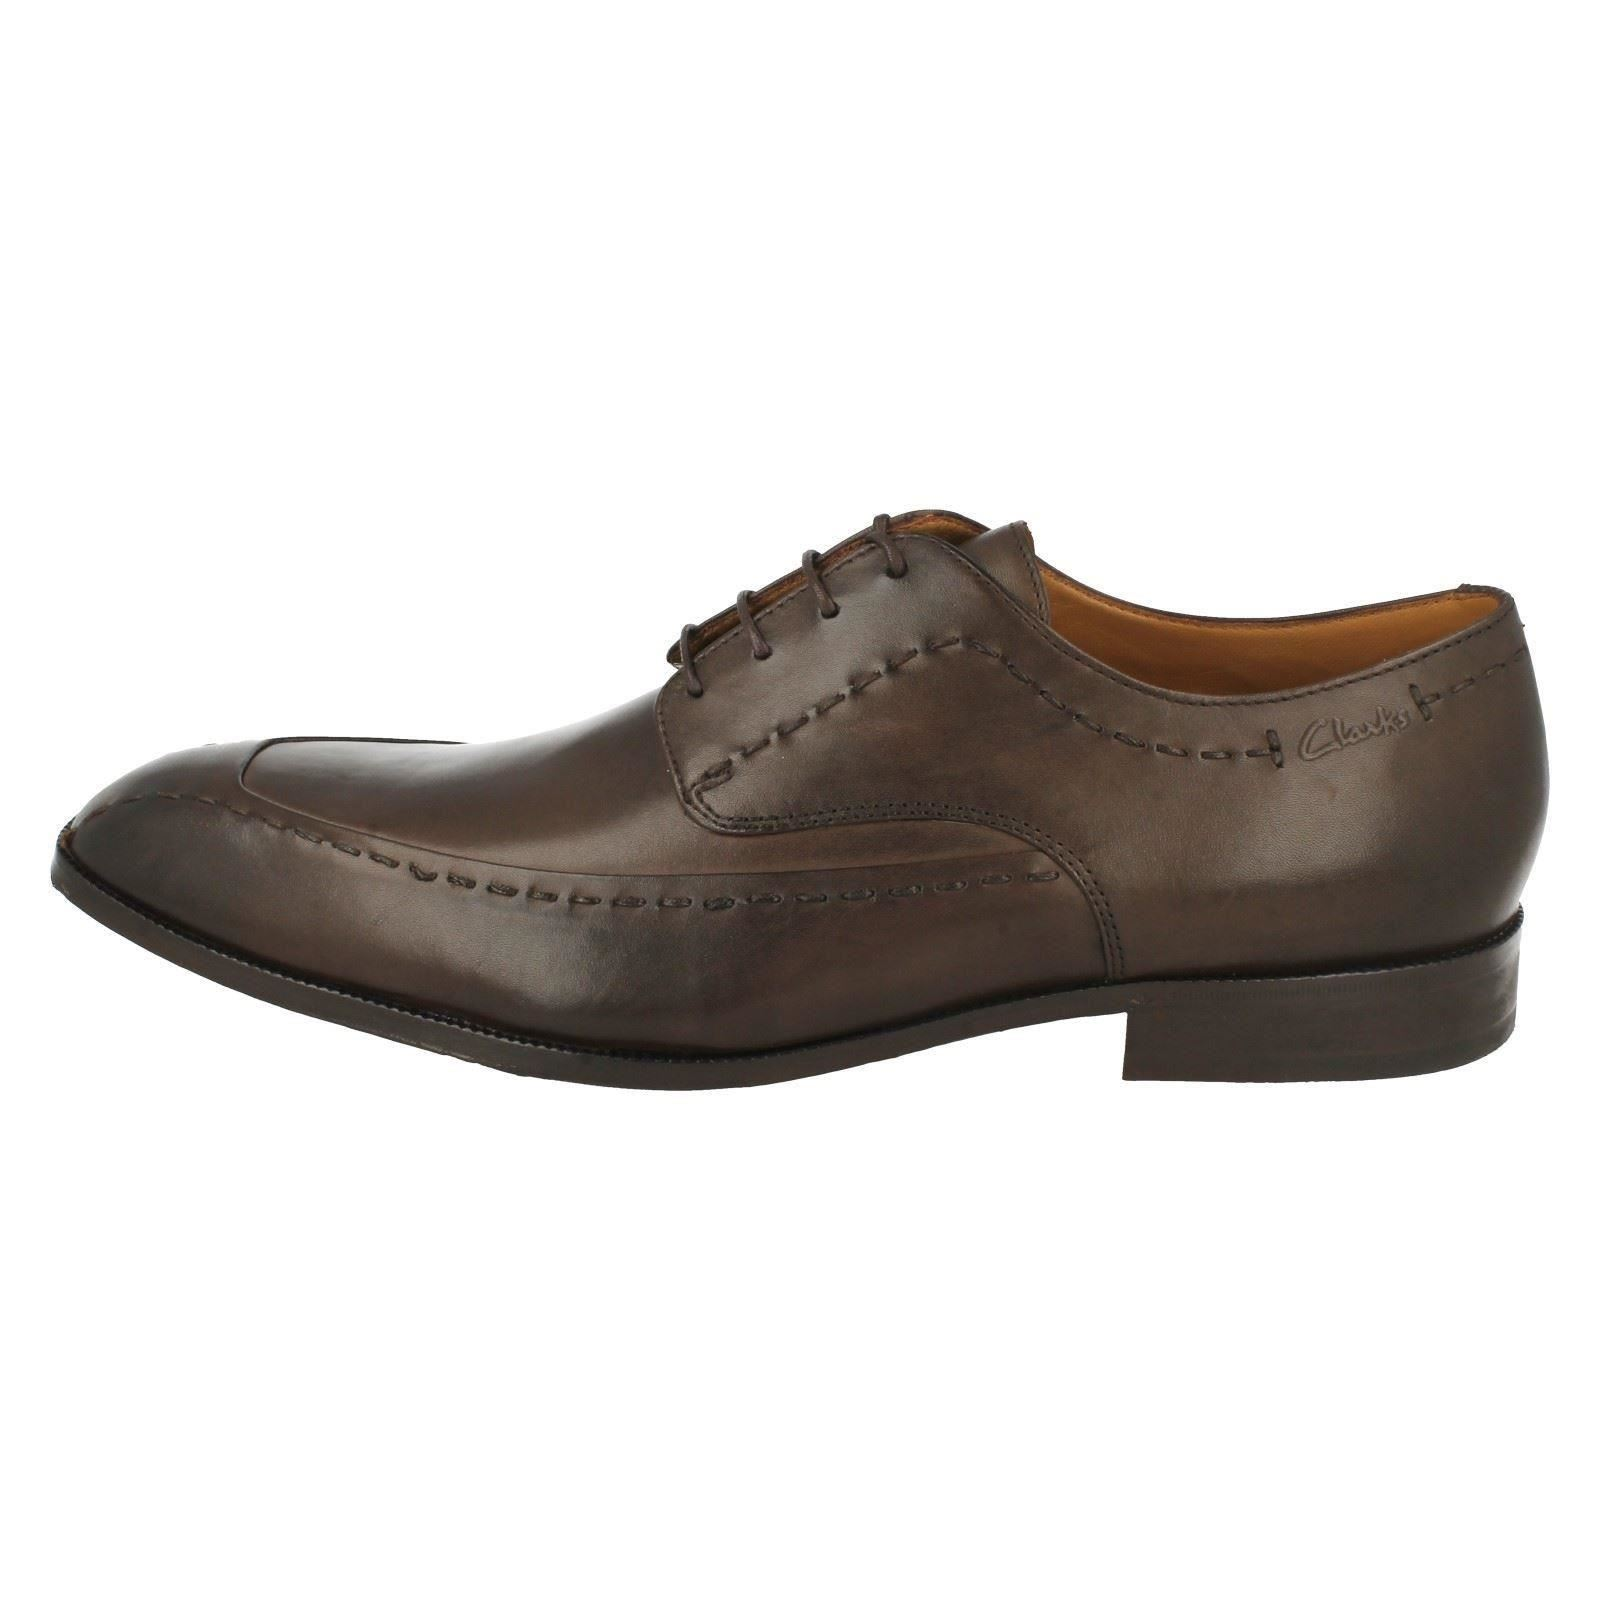 Clarks Uomo Clarks  Formal Schuhes Fair Cafe a63909